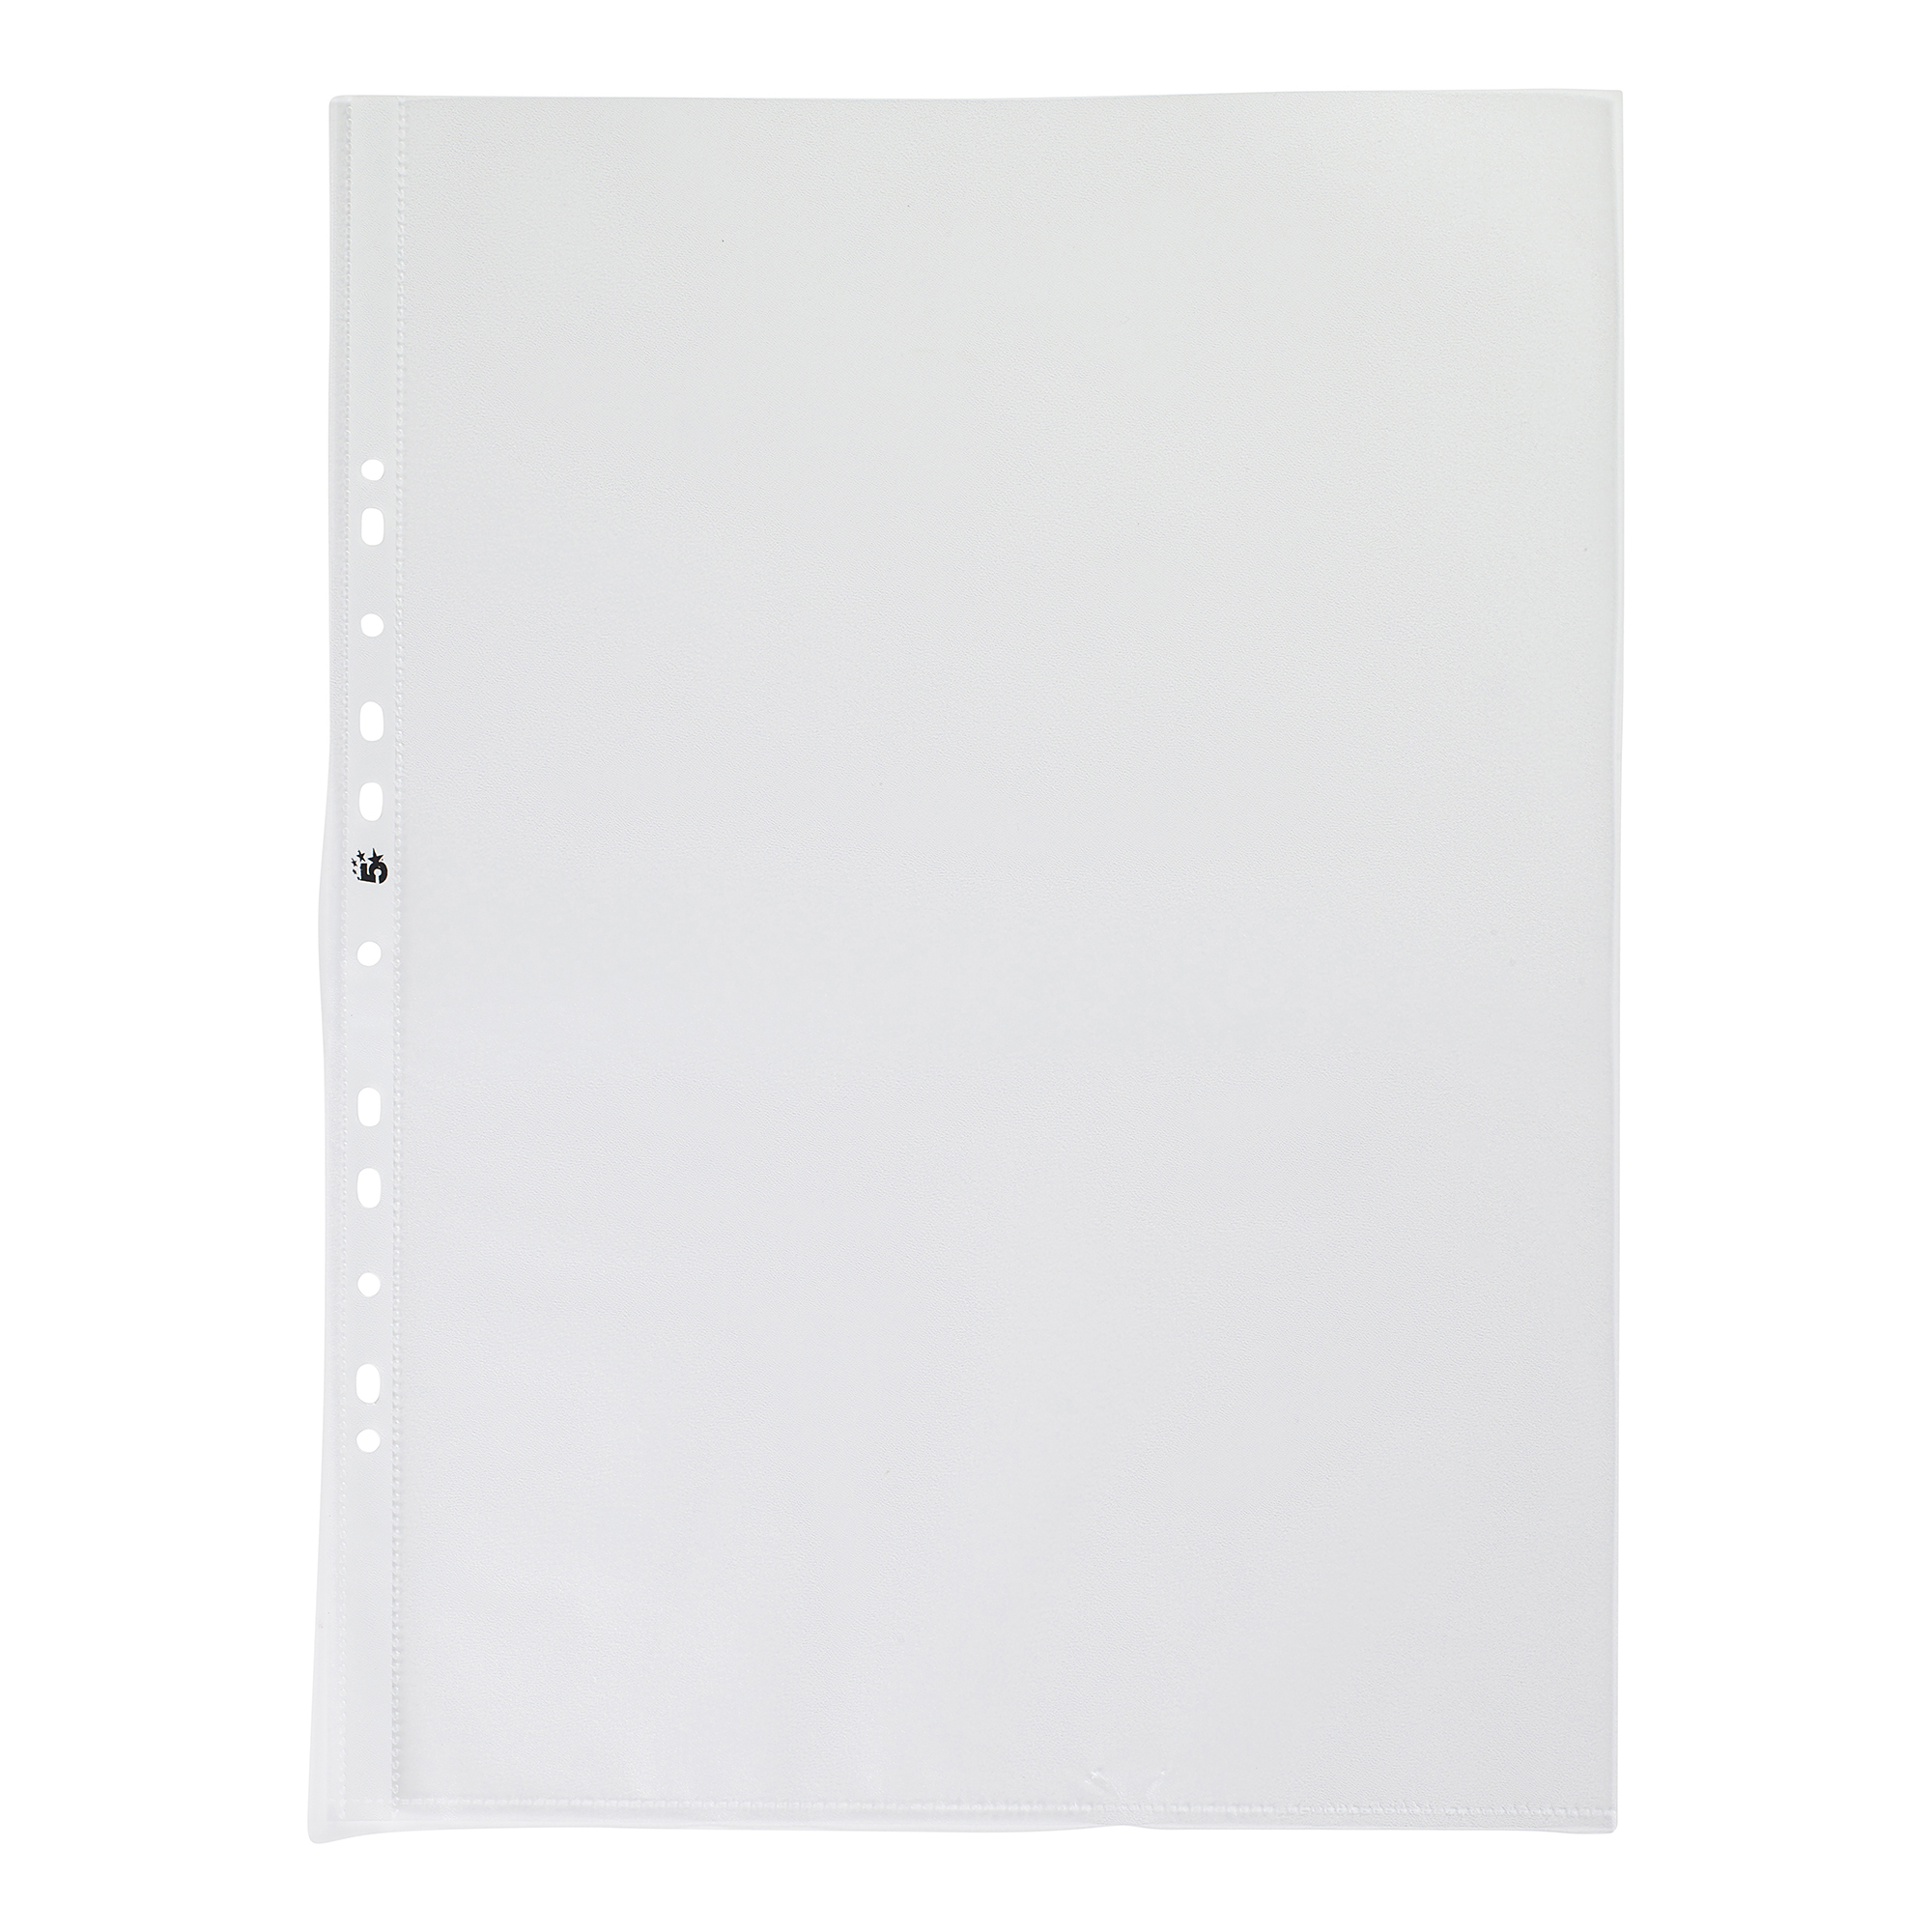 5 Star Office Punched Pocket Embossed Polypropylene Top-opening Portrait 90 Micron A3 Clear [Pack 25]